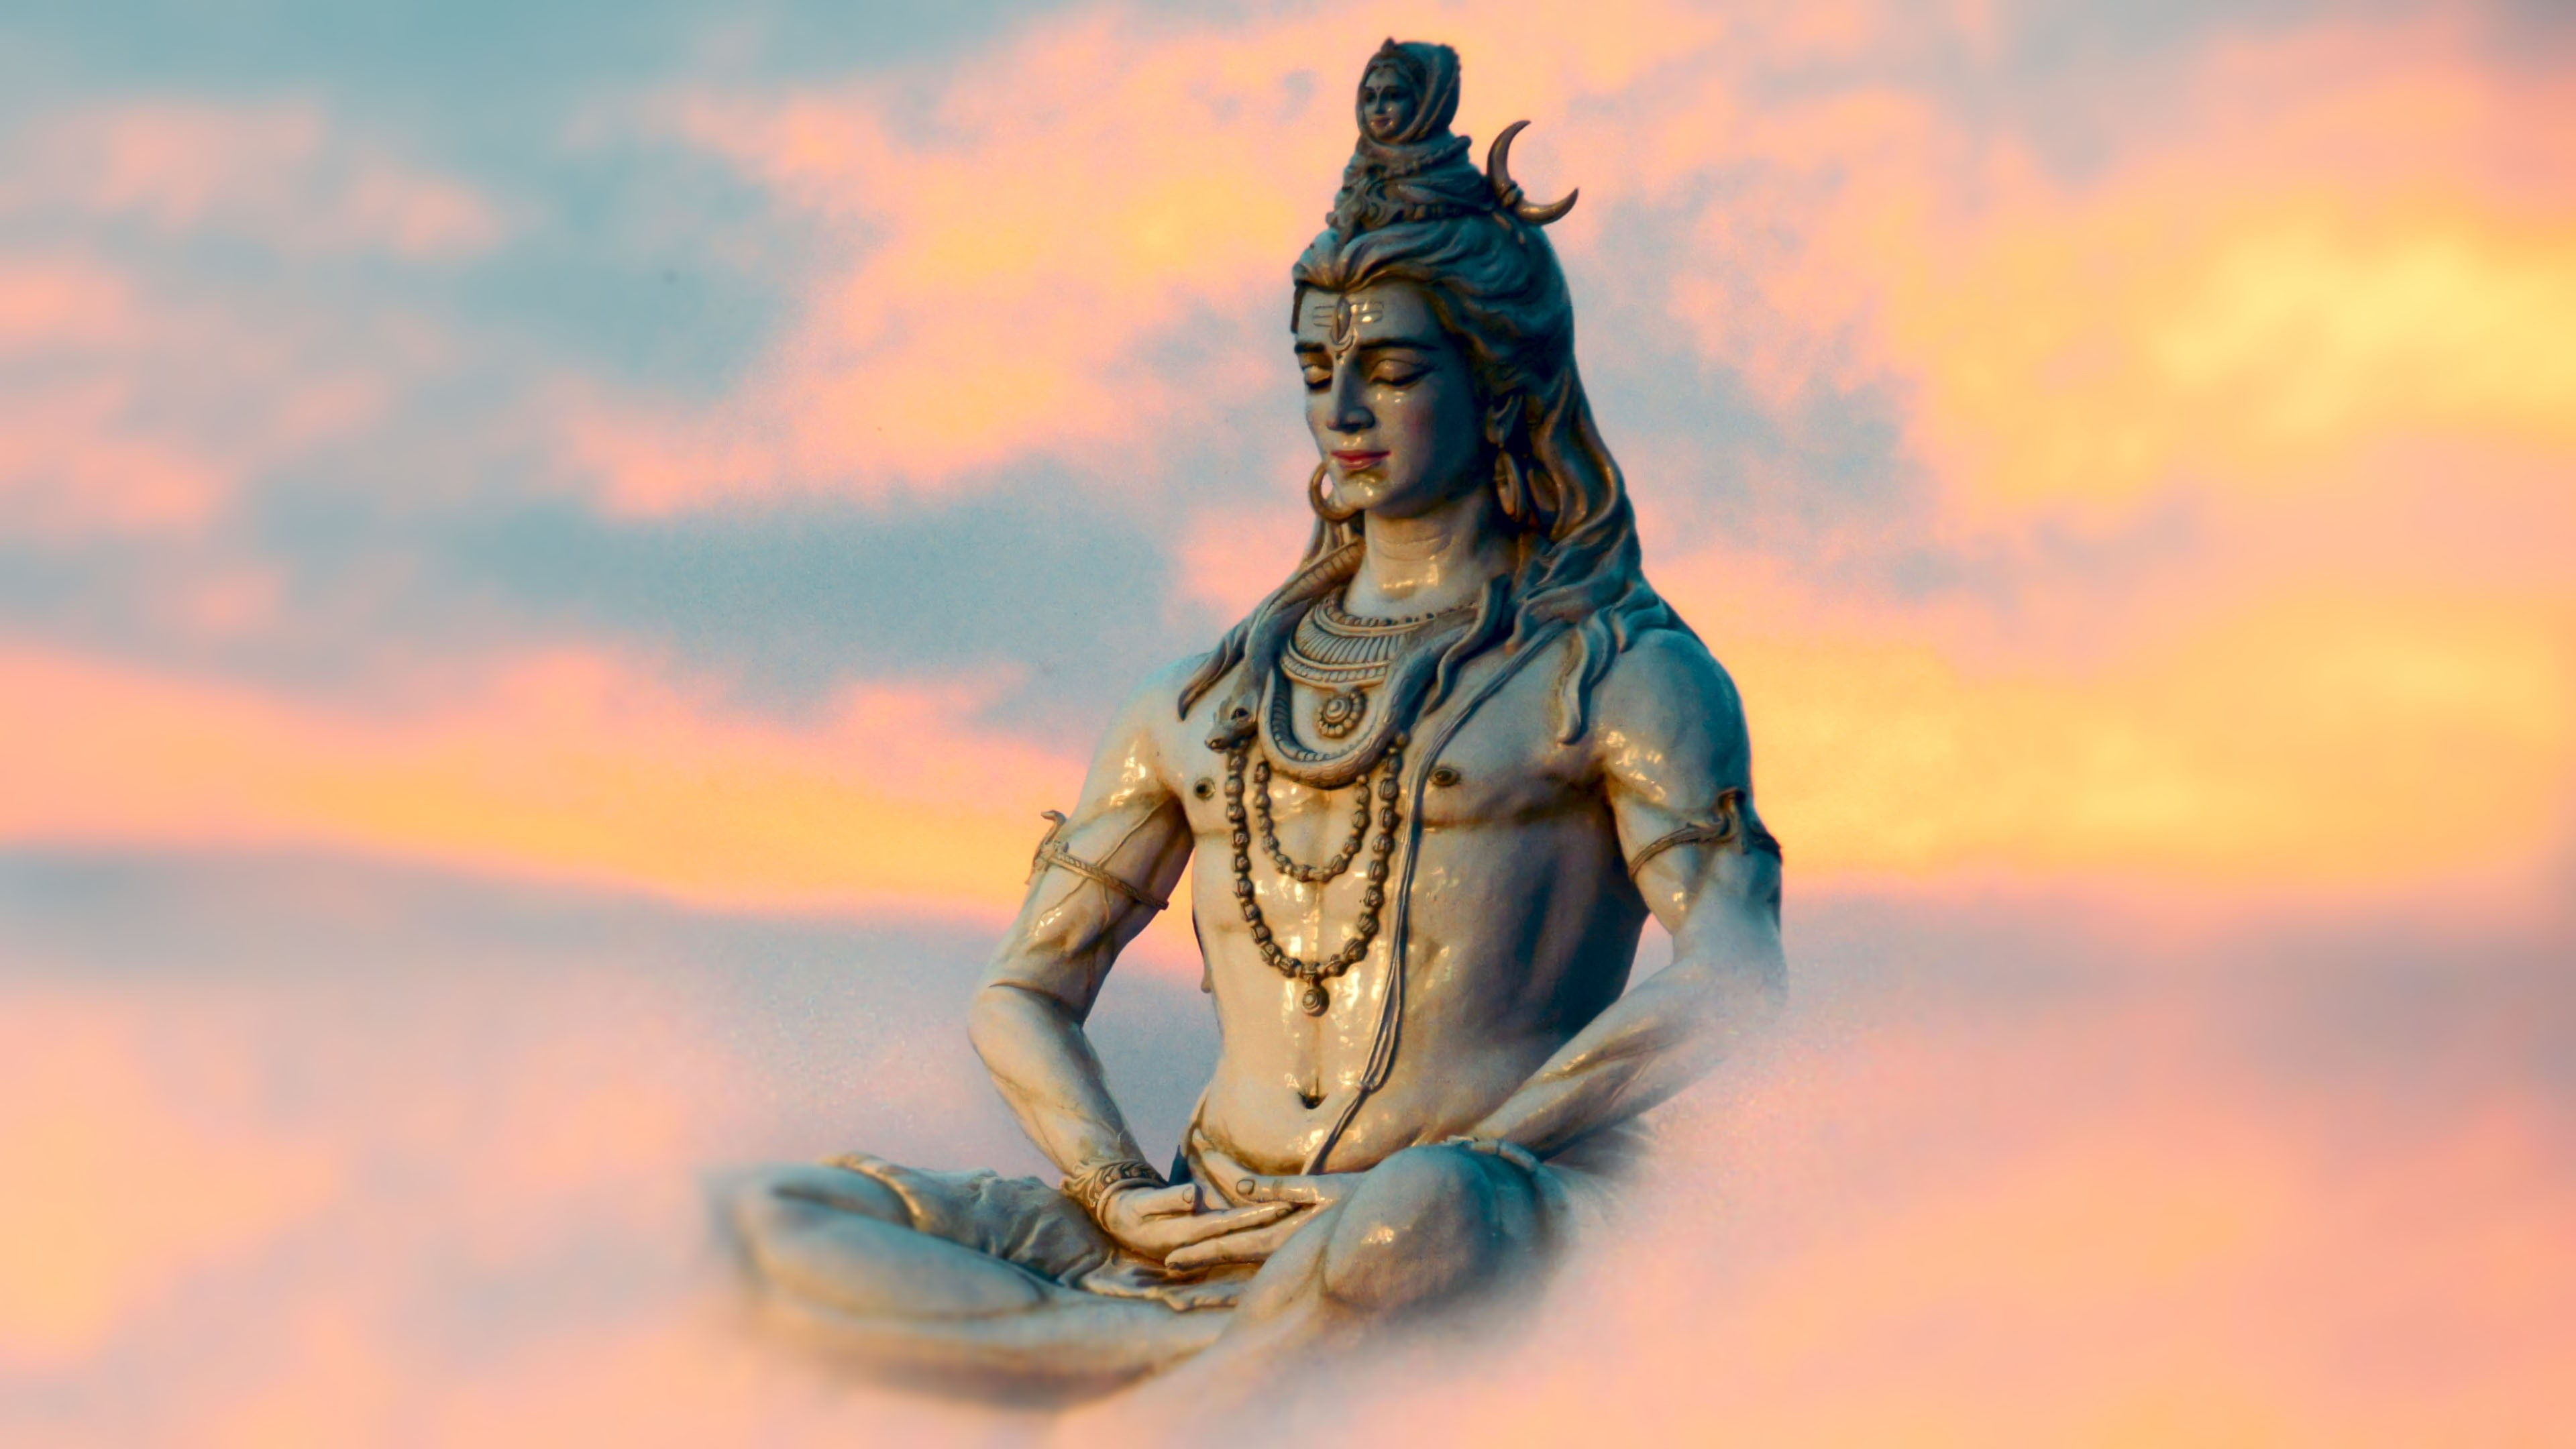 3840x2160 Lord Shiva HD Wallpapers